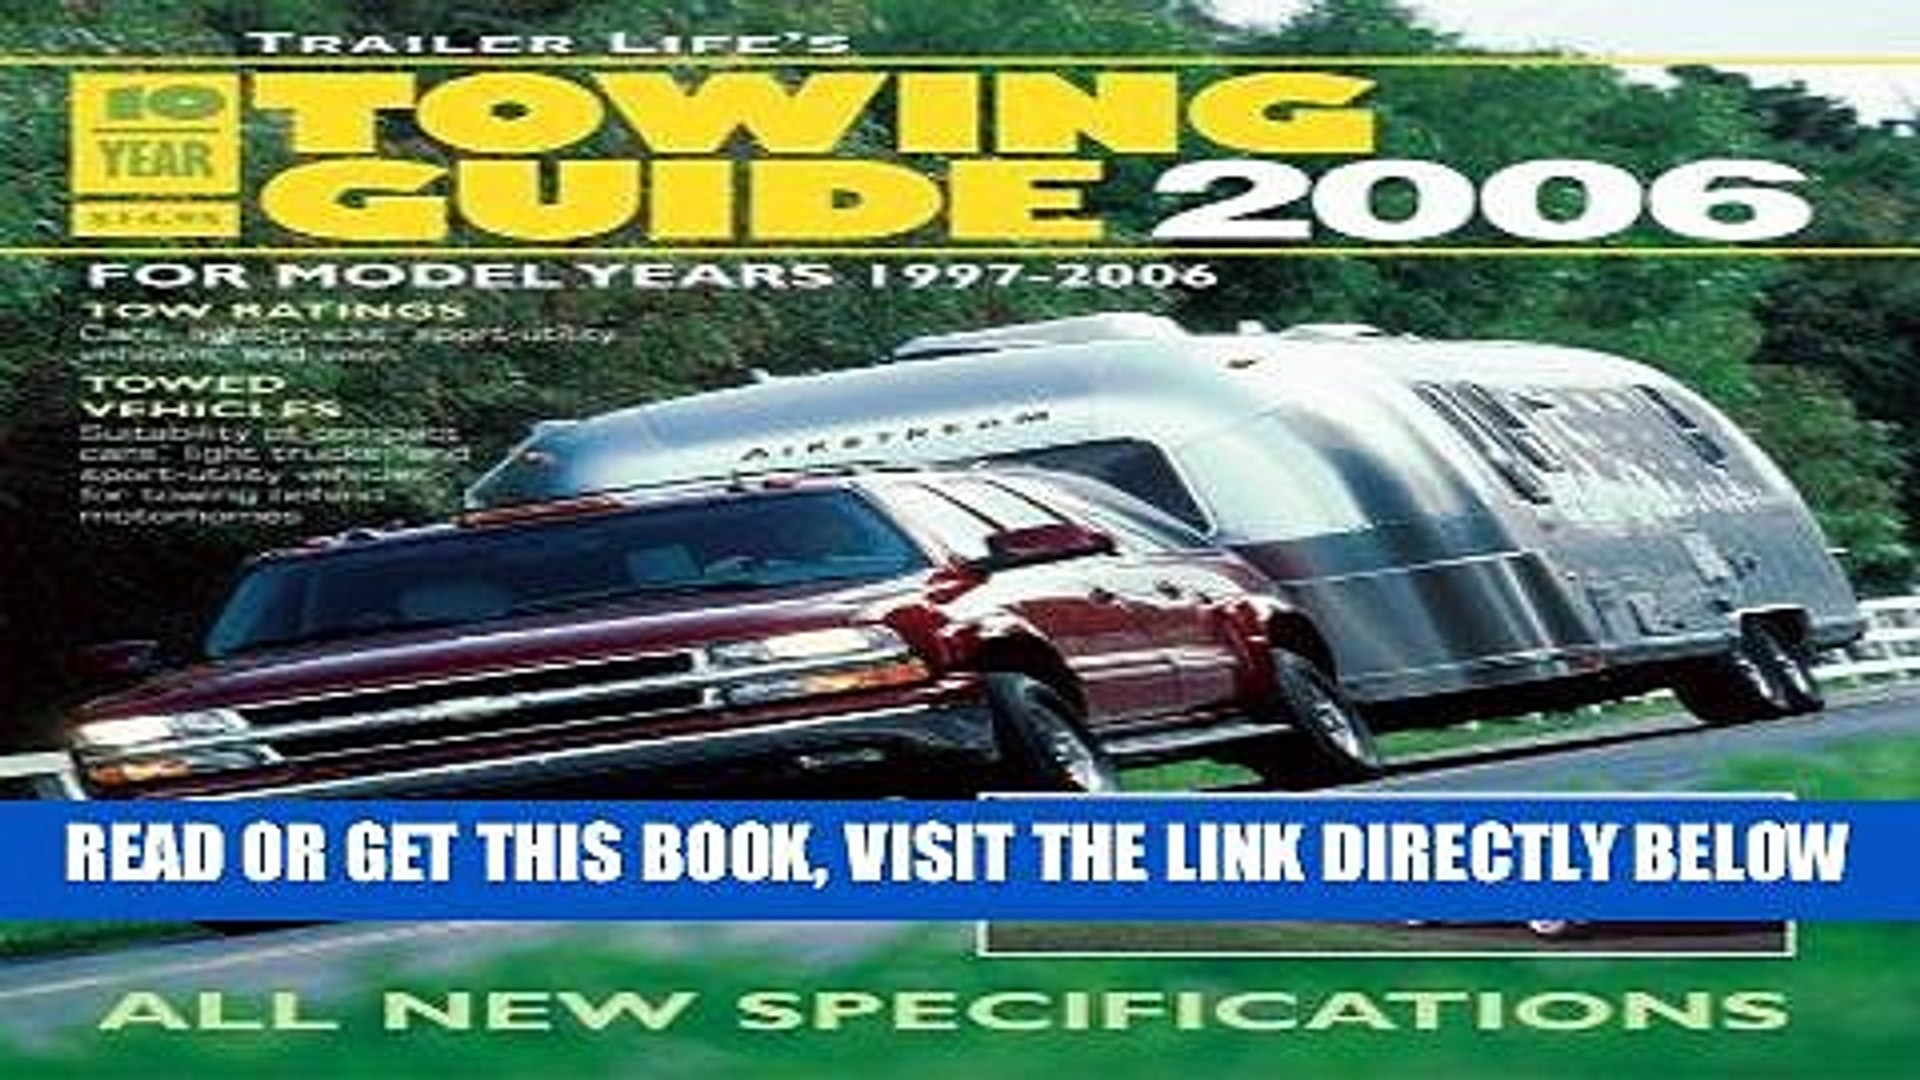 [FREE] EBOOK Trailer Life s 10-Year Towing Guide 2006: For Model Years 1997-2006 BEST COLLECTION